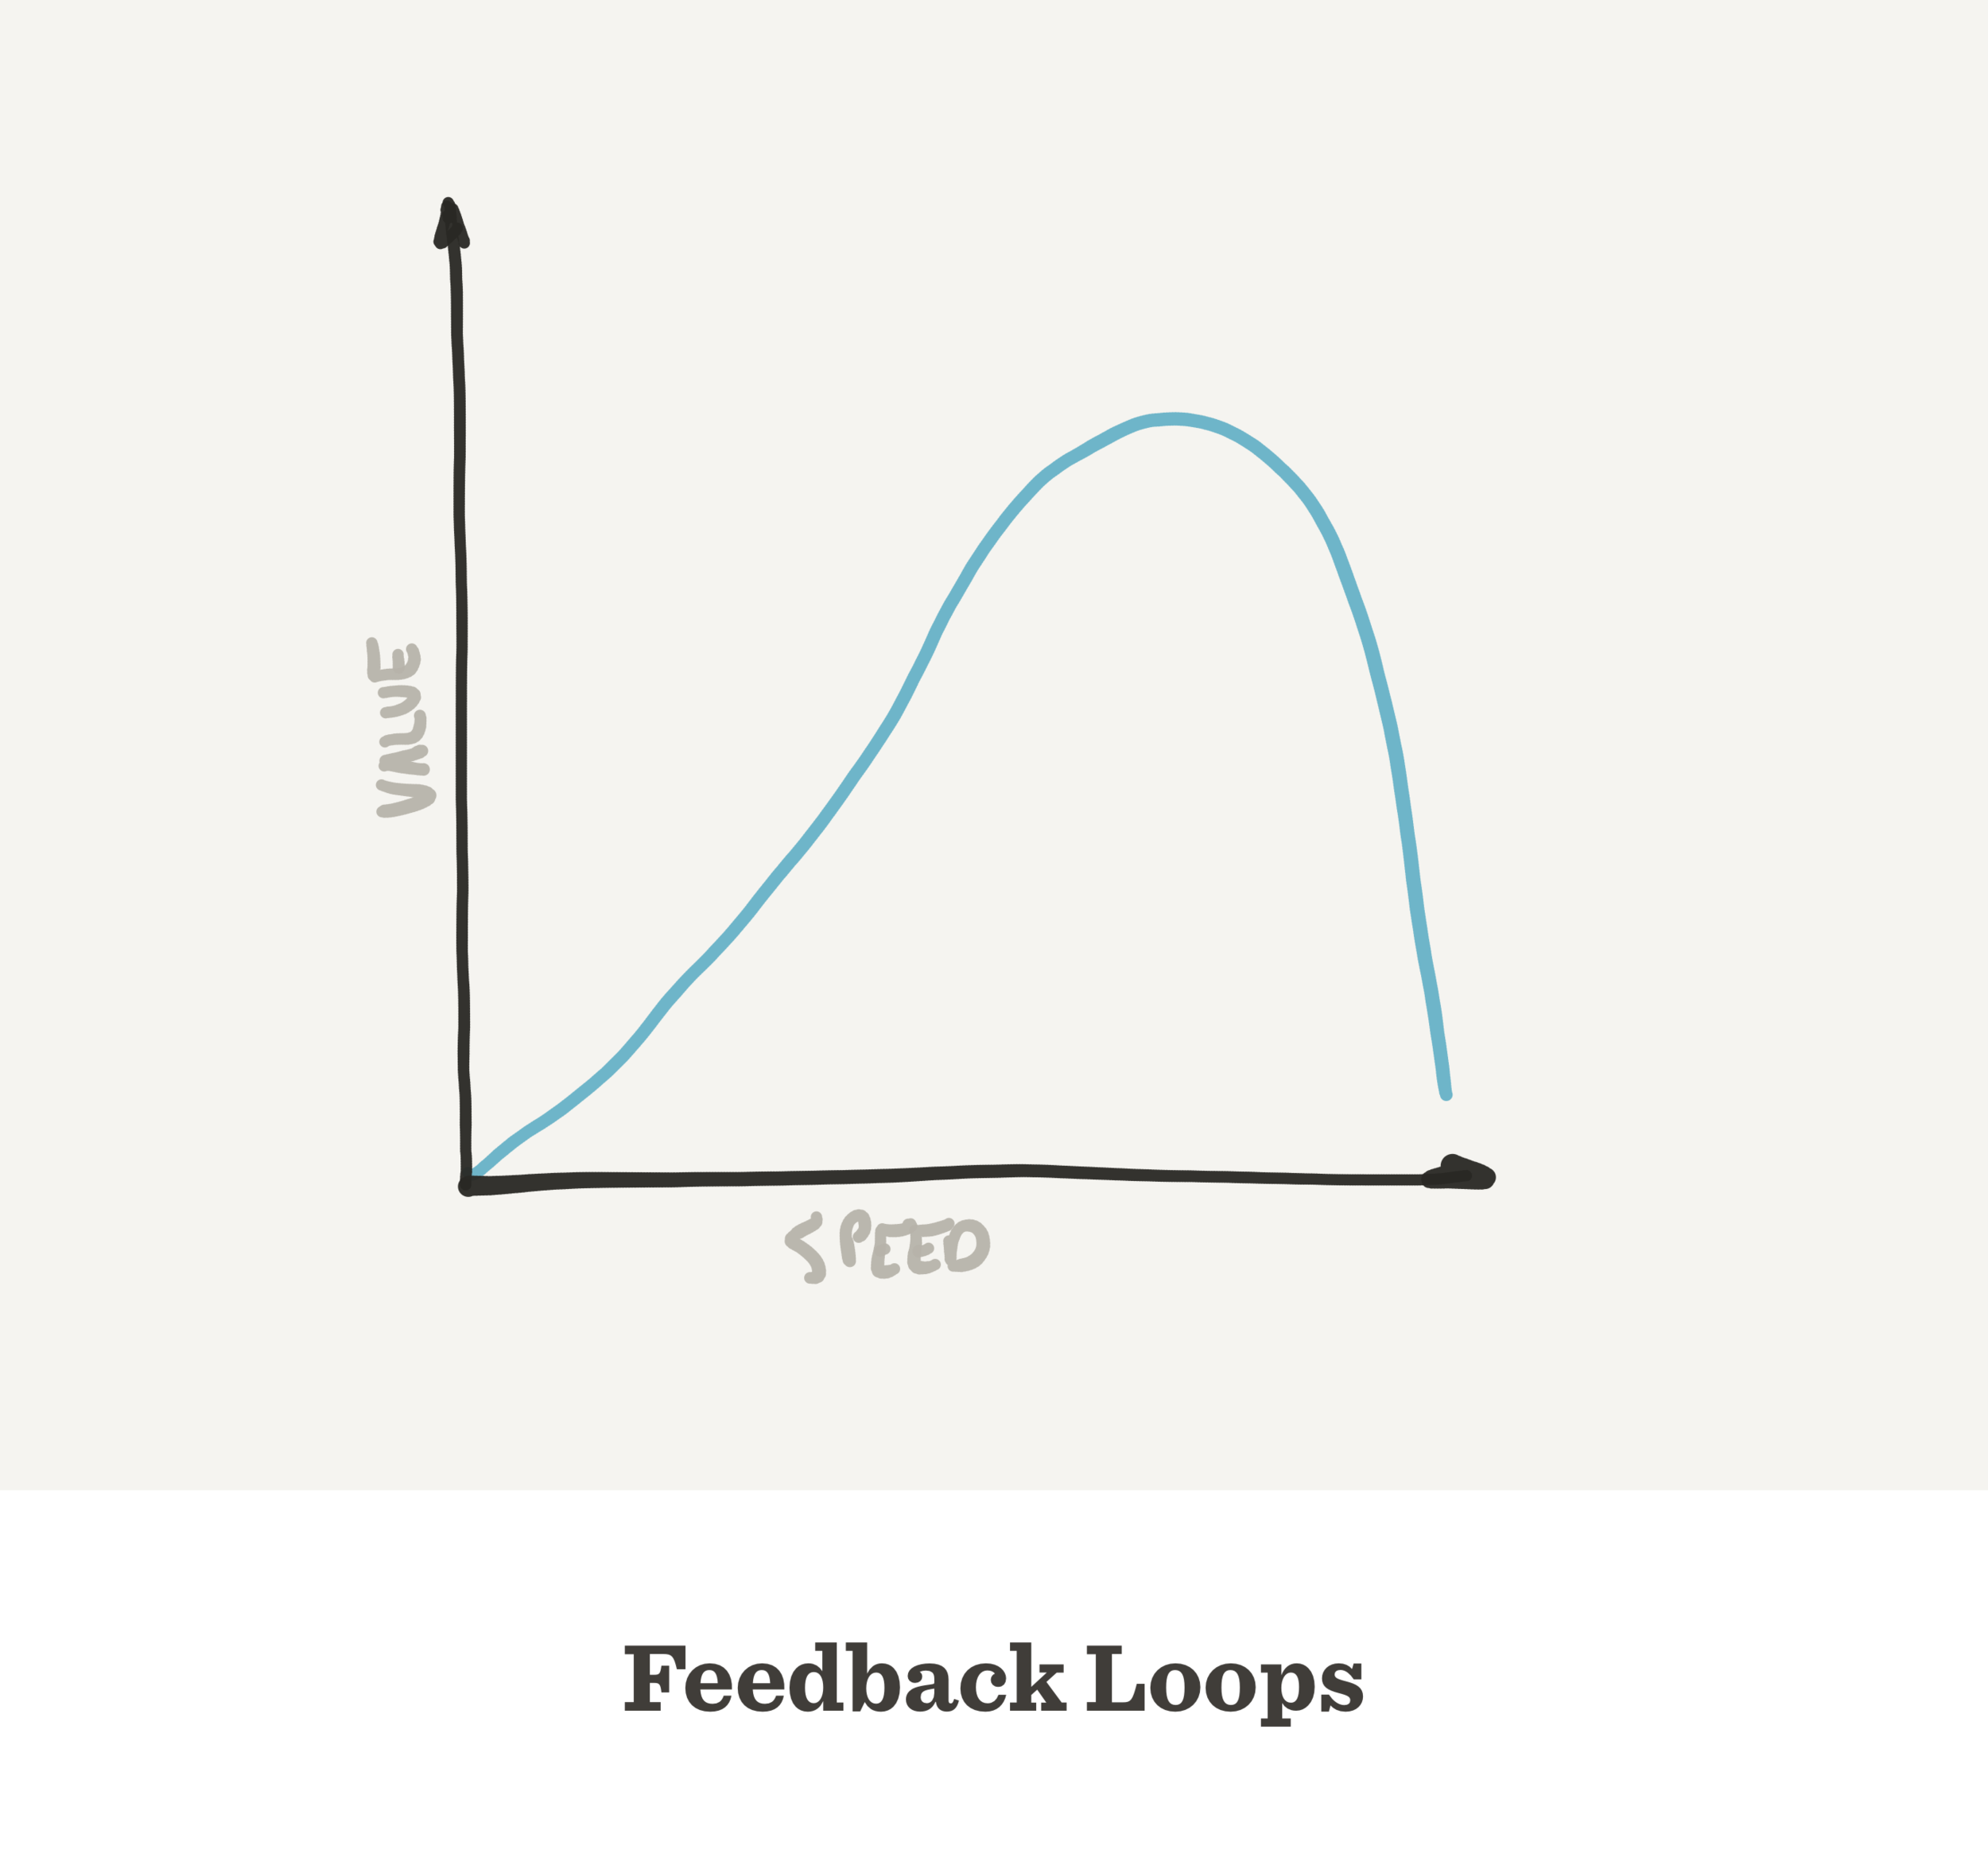 diminishing_returns_of_tighter_feedback_loops